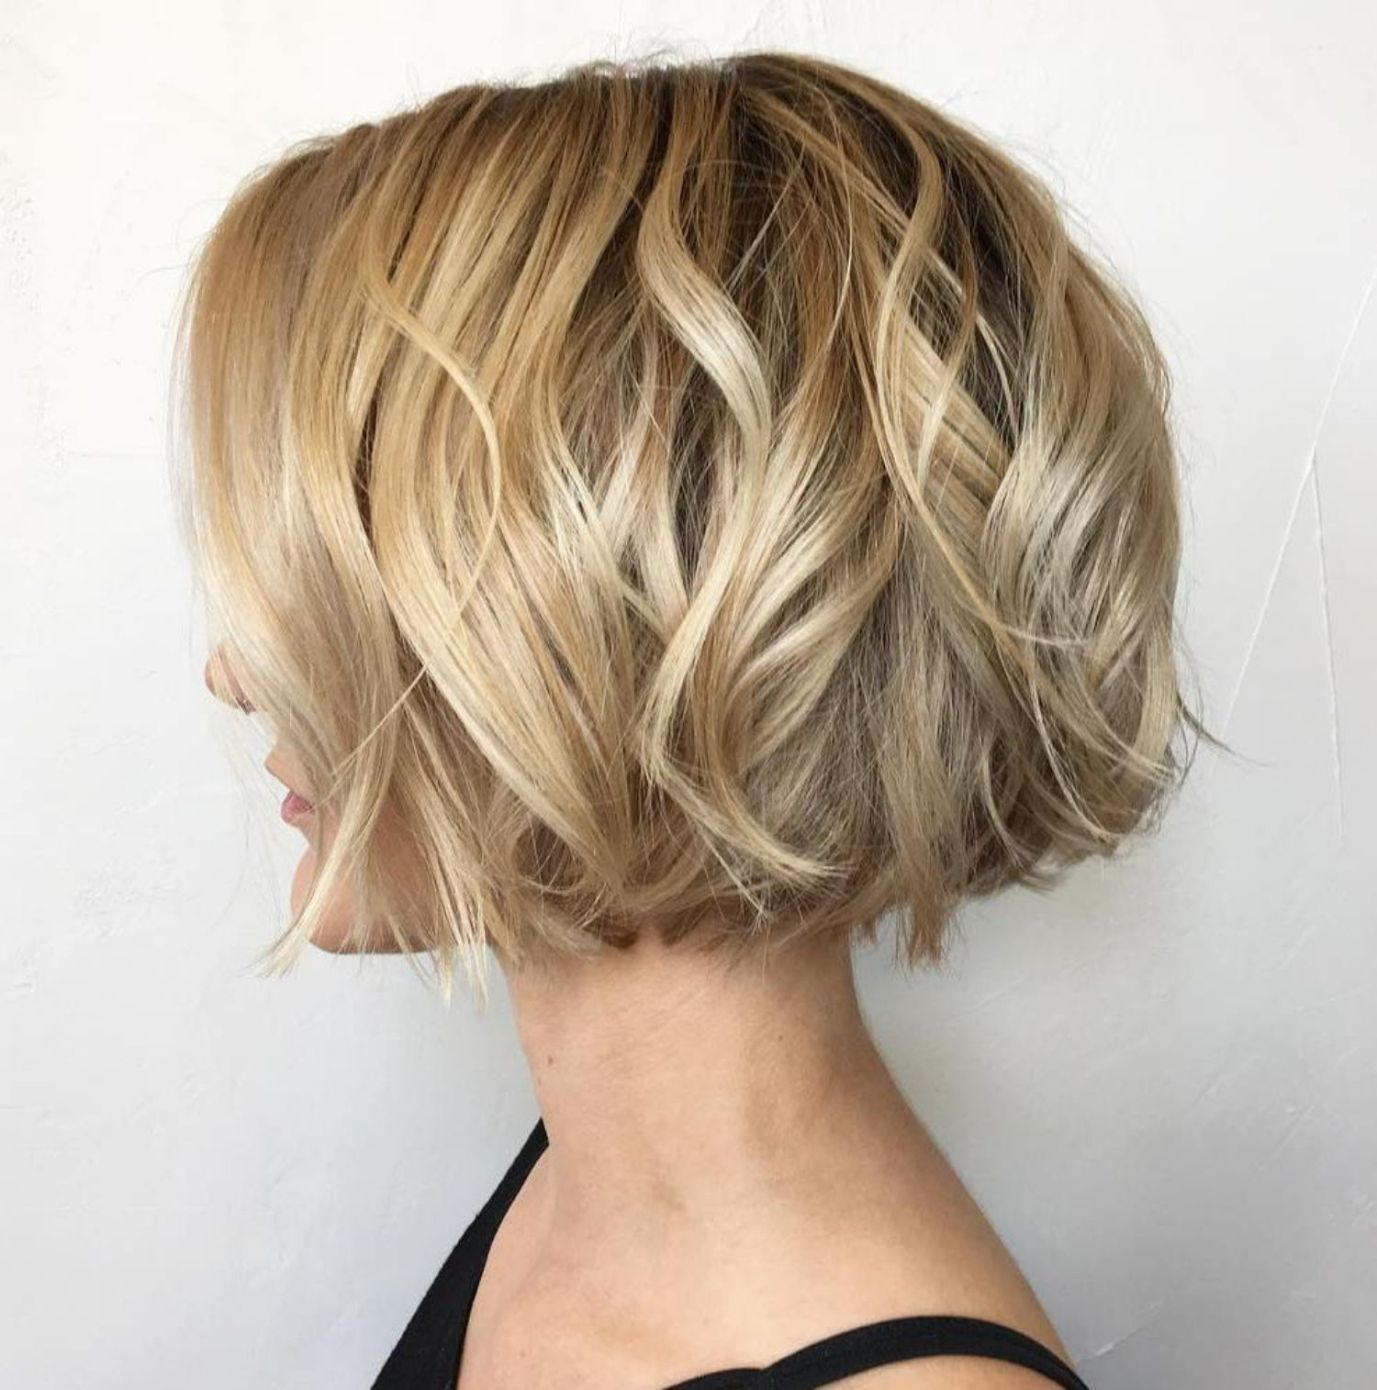 100 Mind Blowing Short Hairstyles For Fine Hair Haircuts